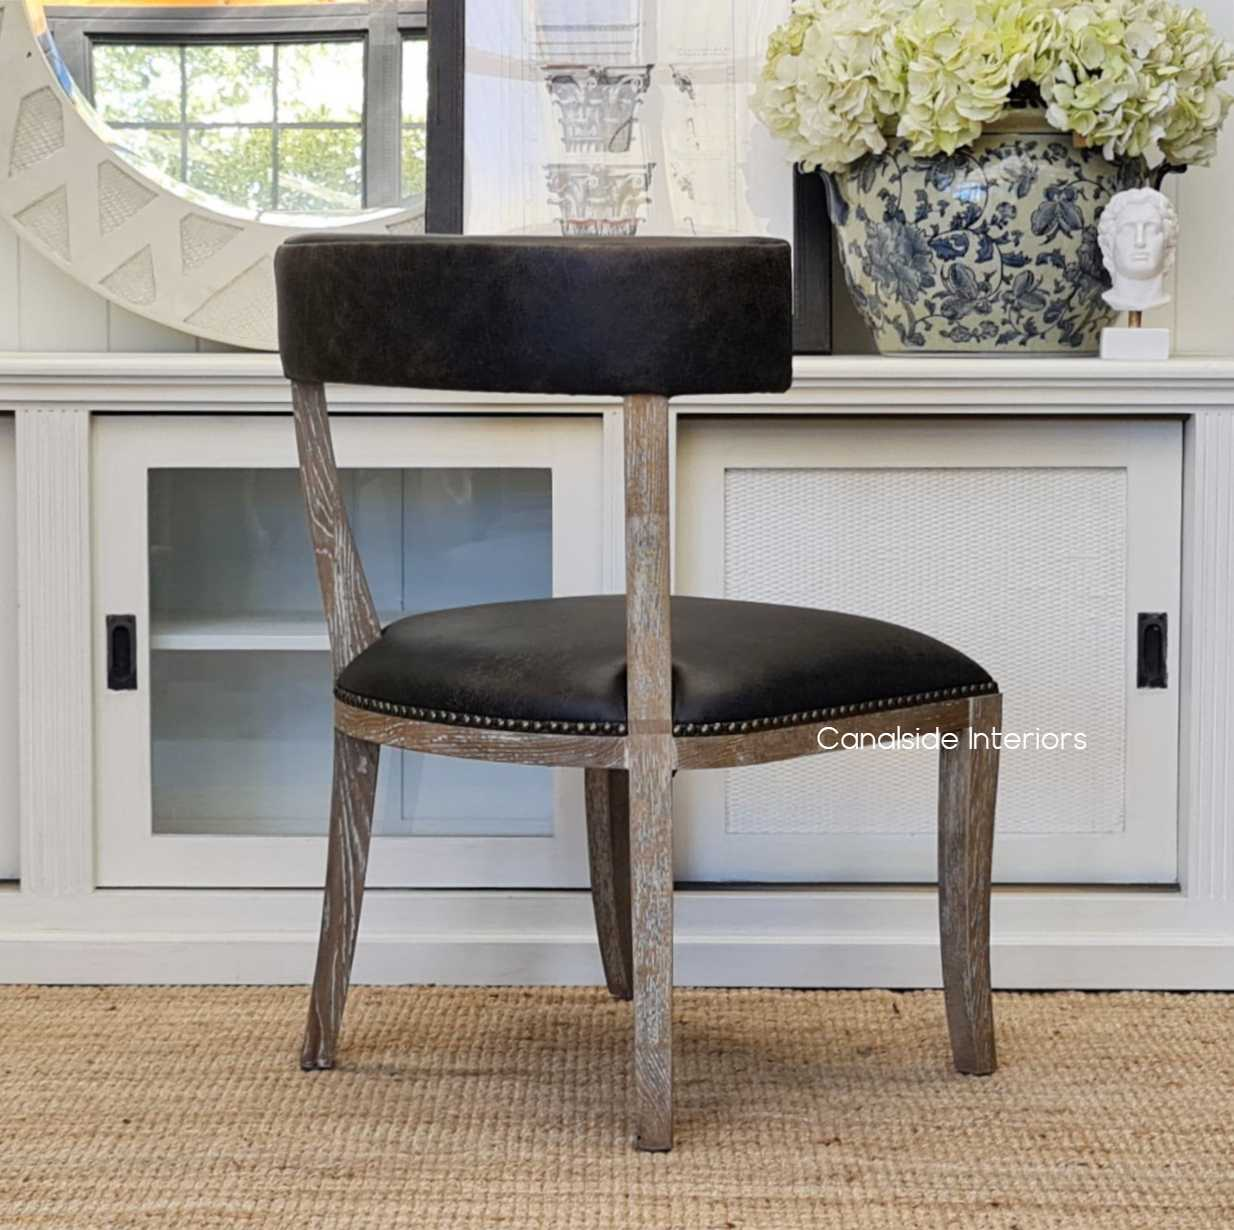 Sainz Aged Leather Dining Chair Dining Room Espresso chairs hamptons modern contemporary kitchen